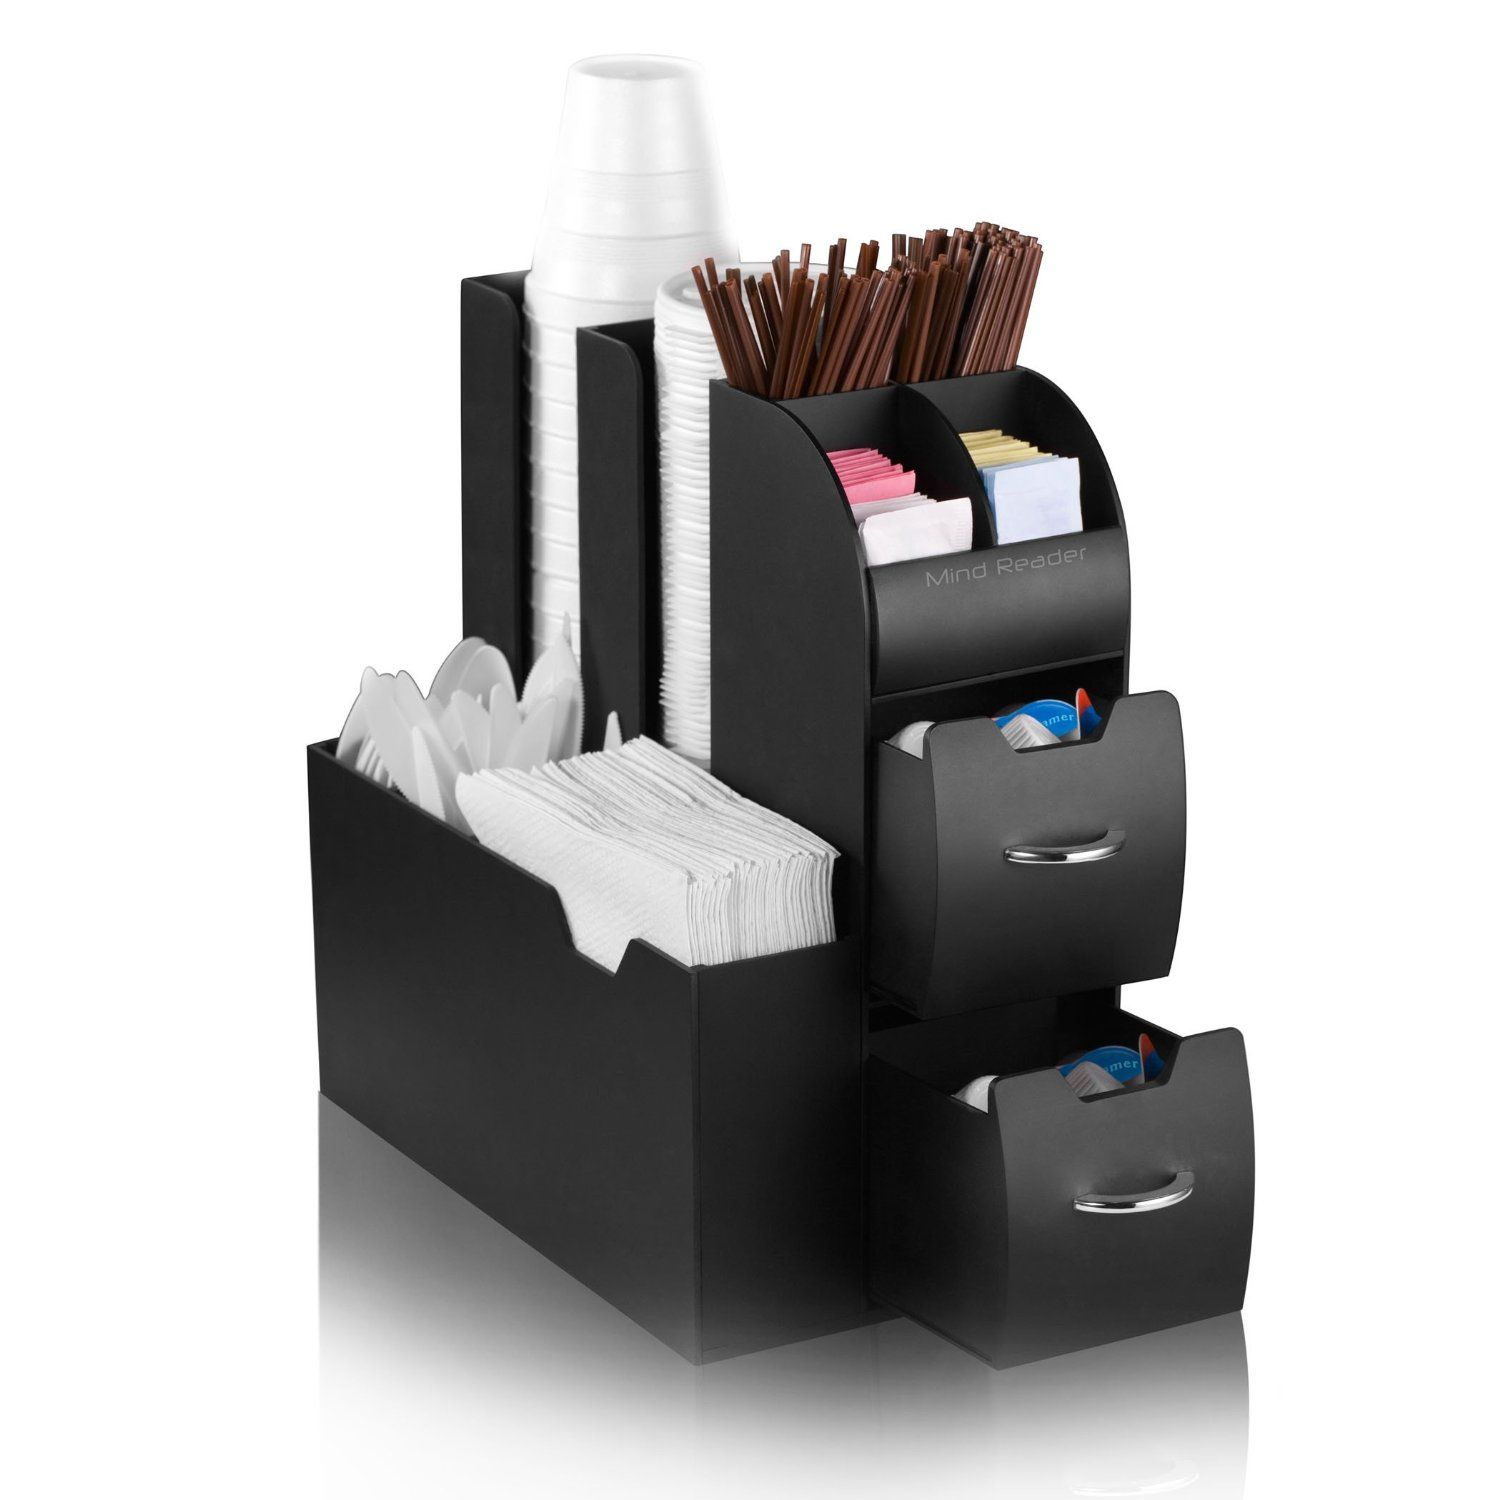 Great Mind Reader Coffee Station Caddy Organizer In Black     The Mind Reader  Organizer Is An All In One, Compact Unit To Hold Your Single Serve Coffee  And Othe